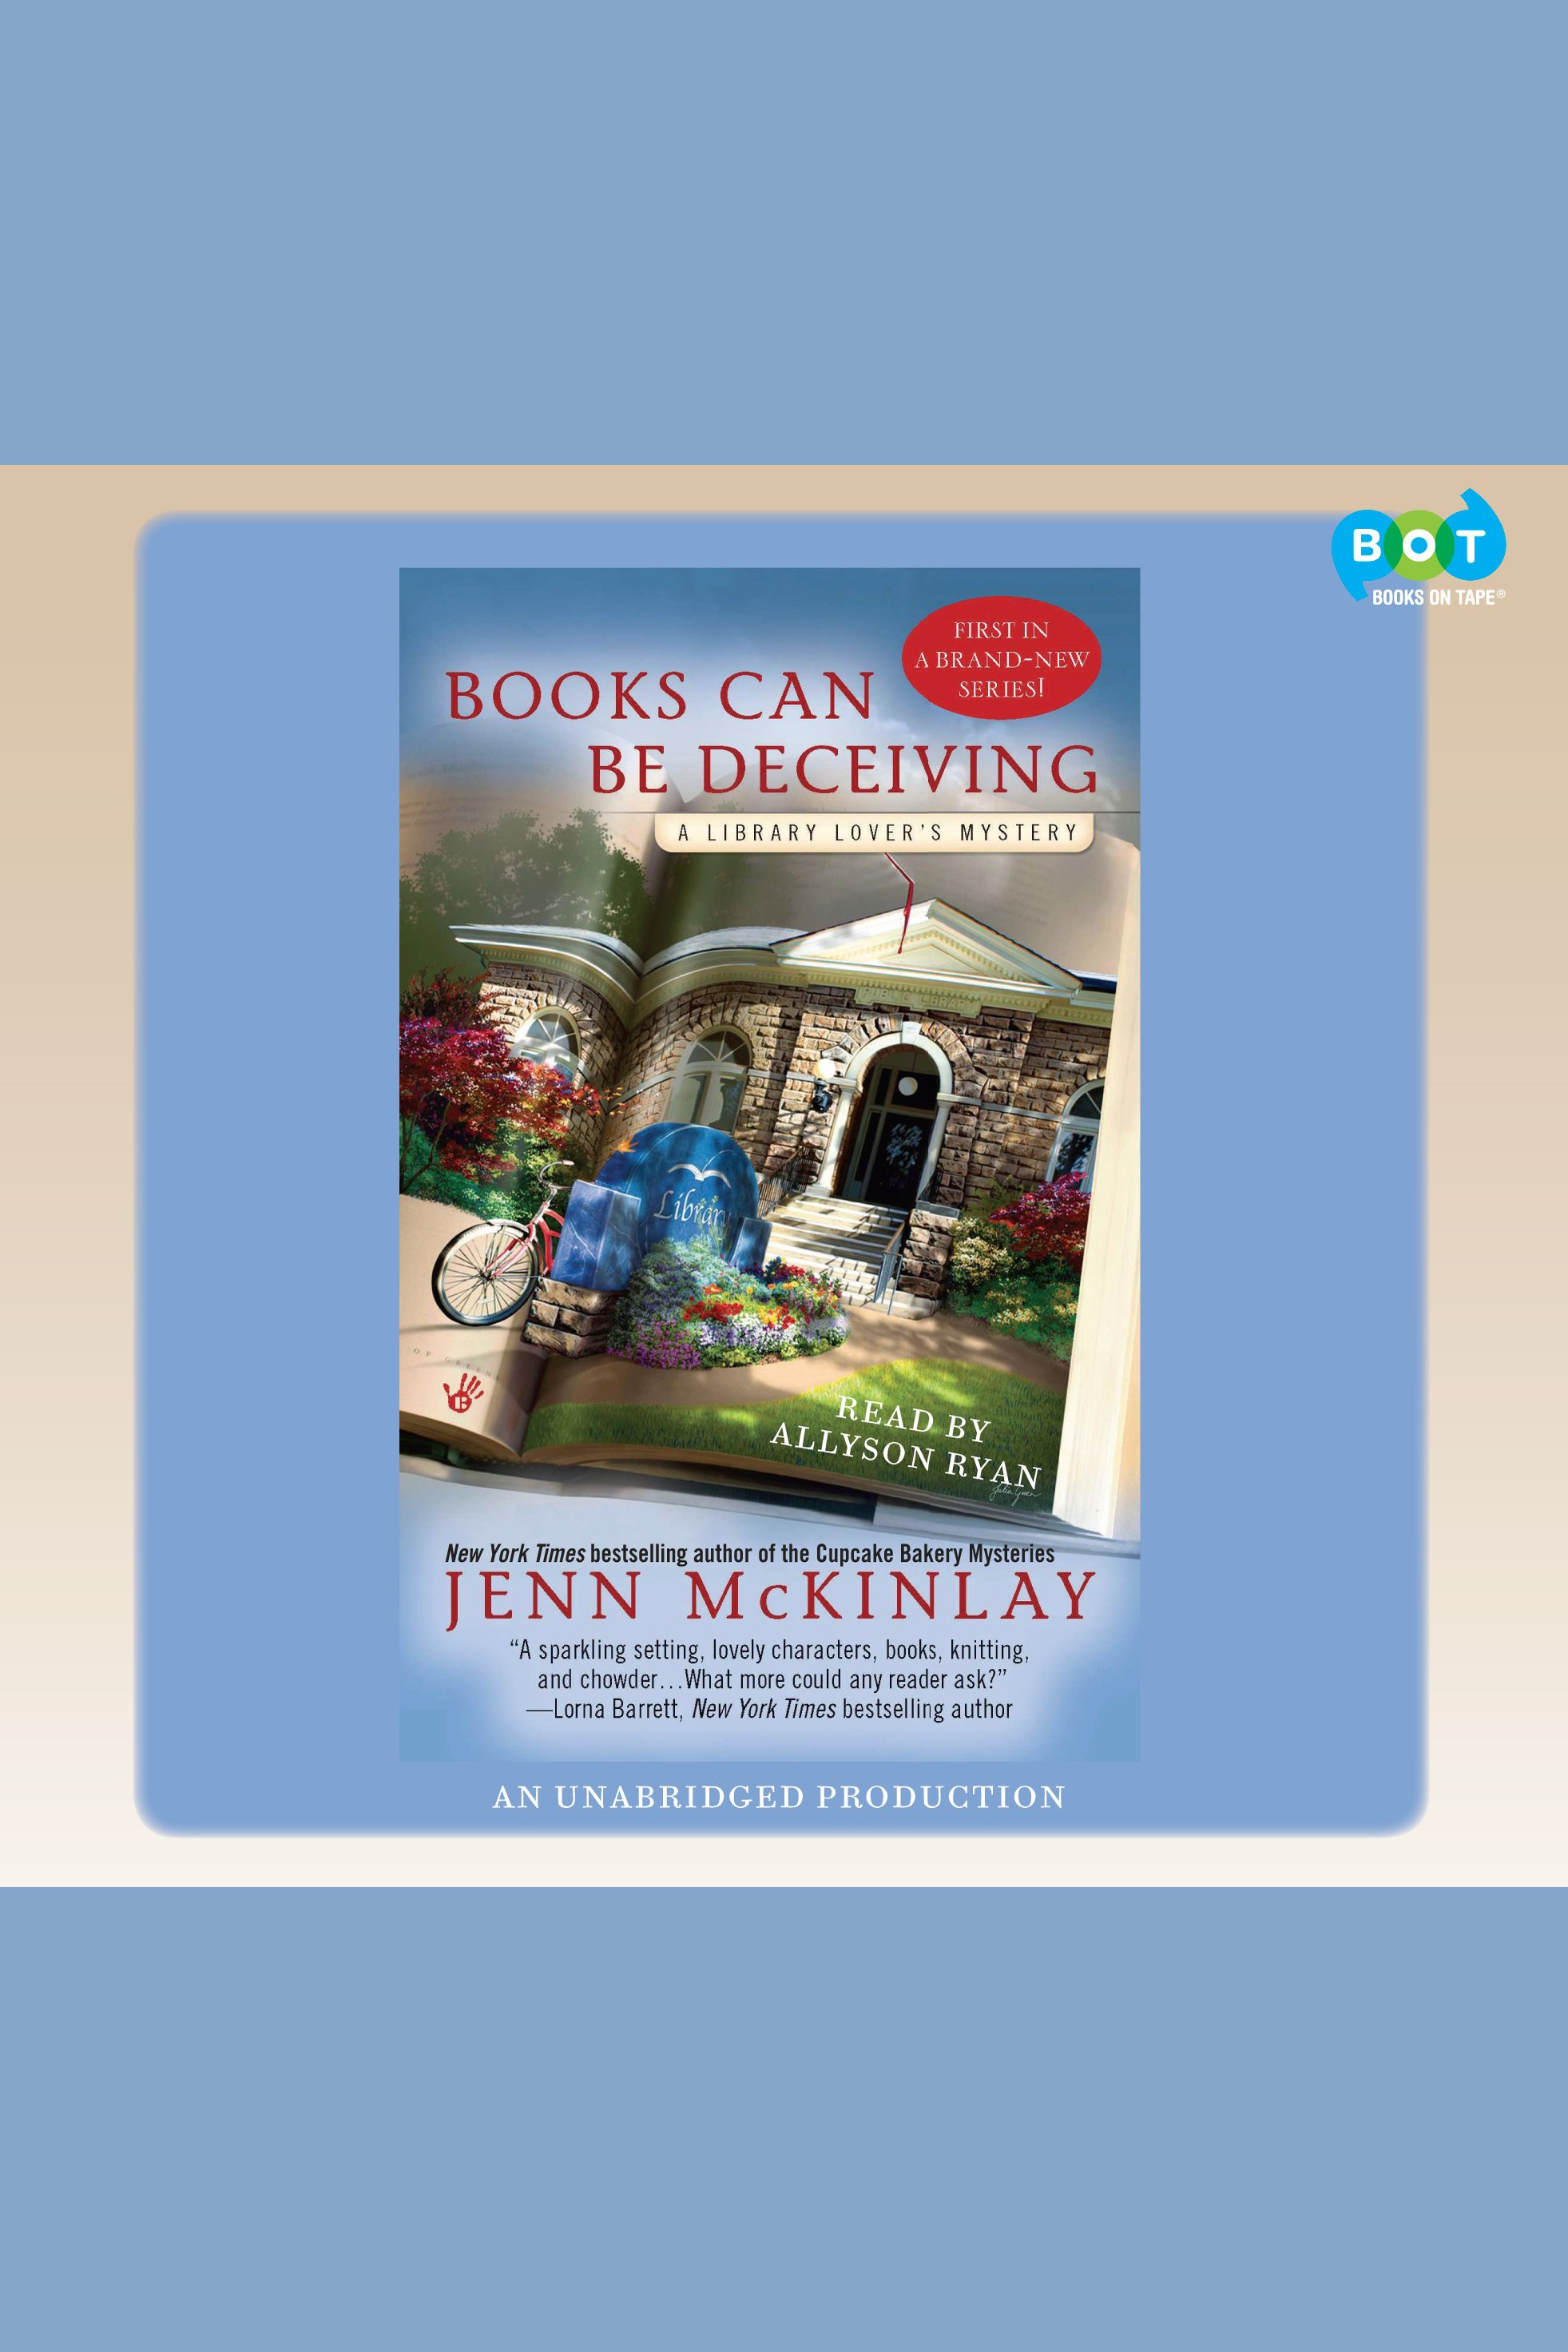 Books can be deceiving cover image